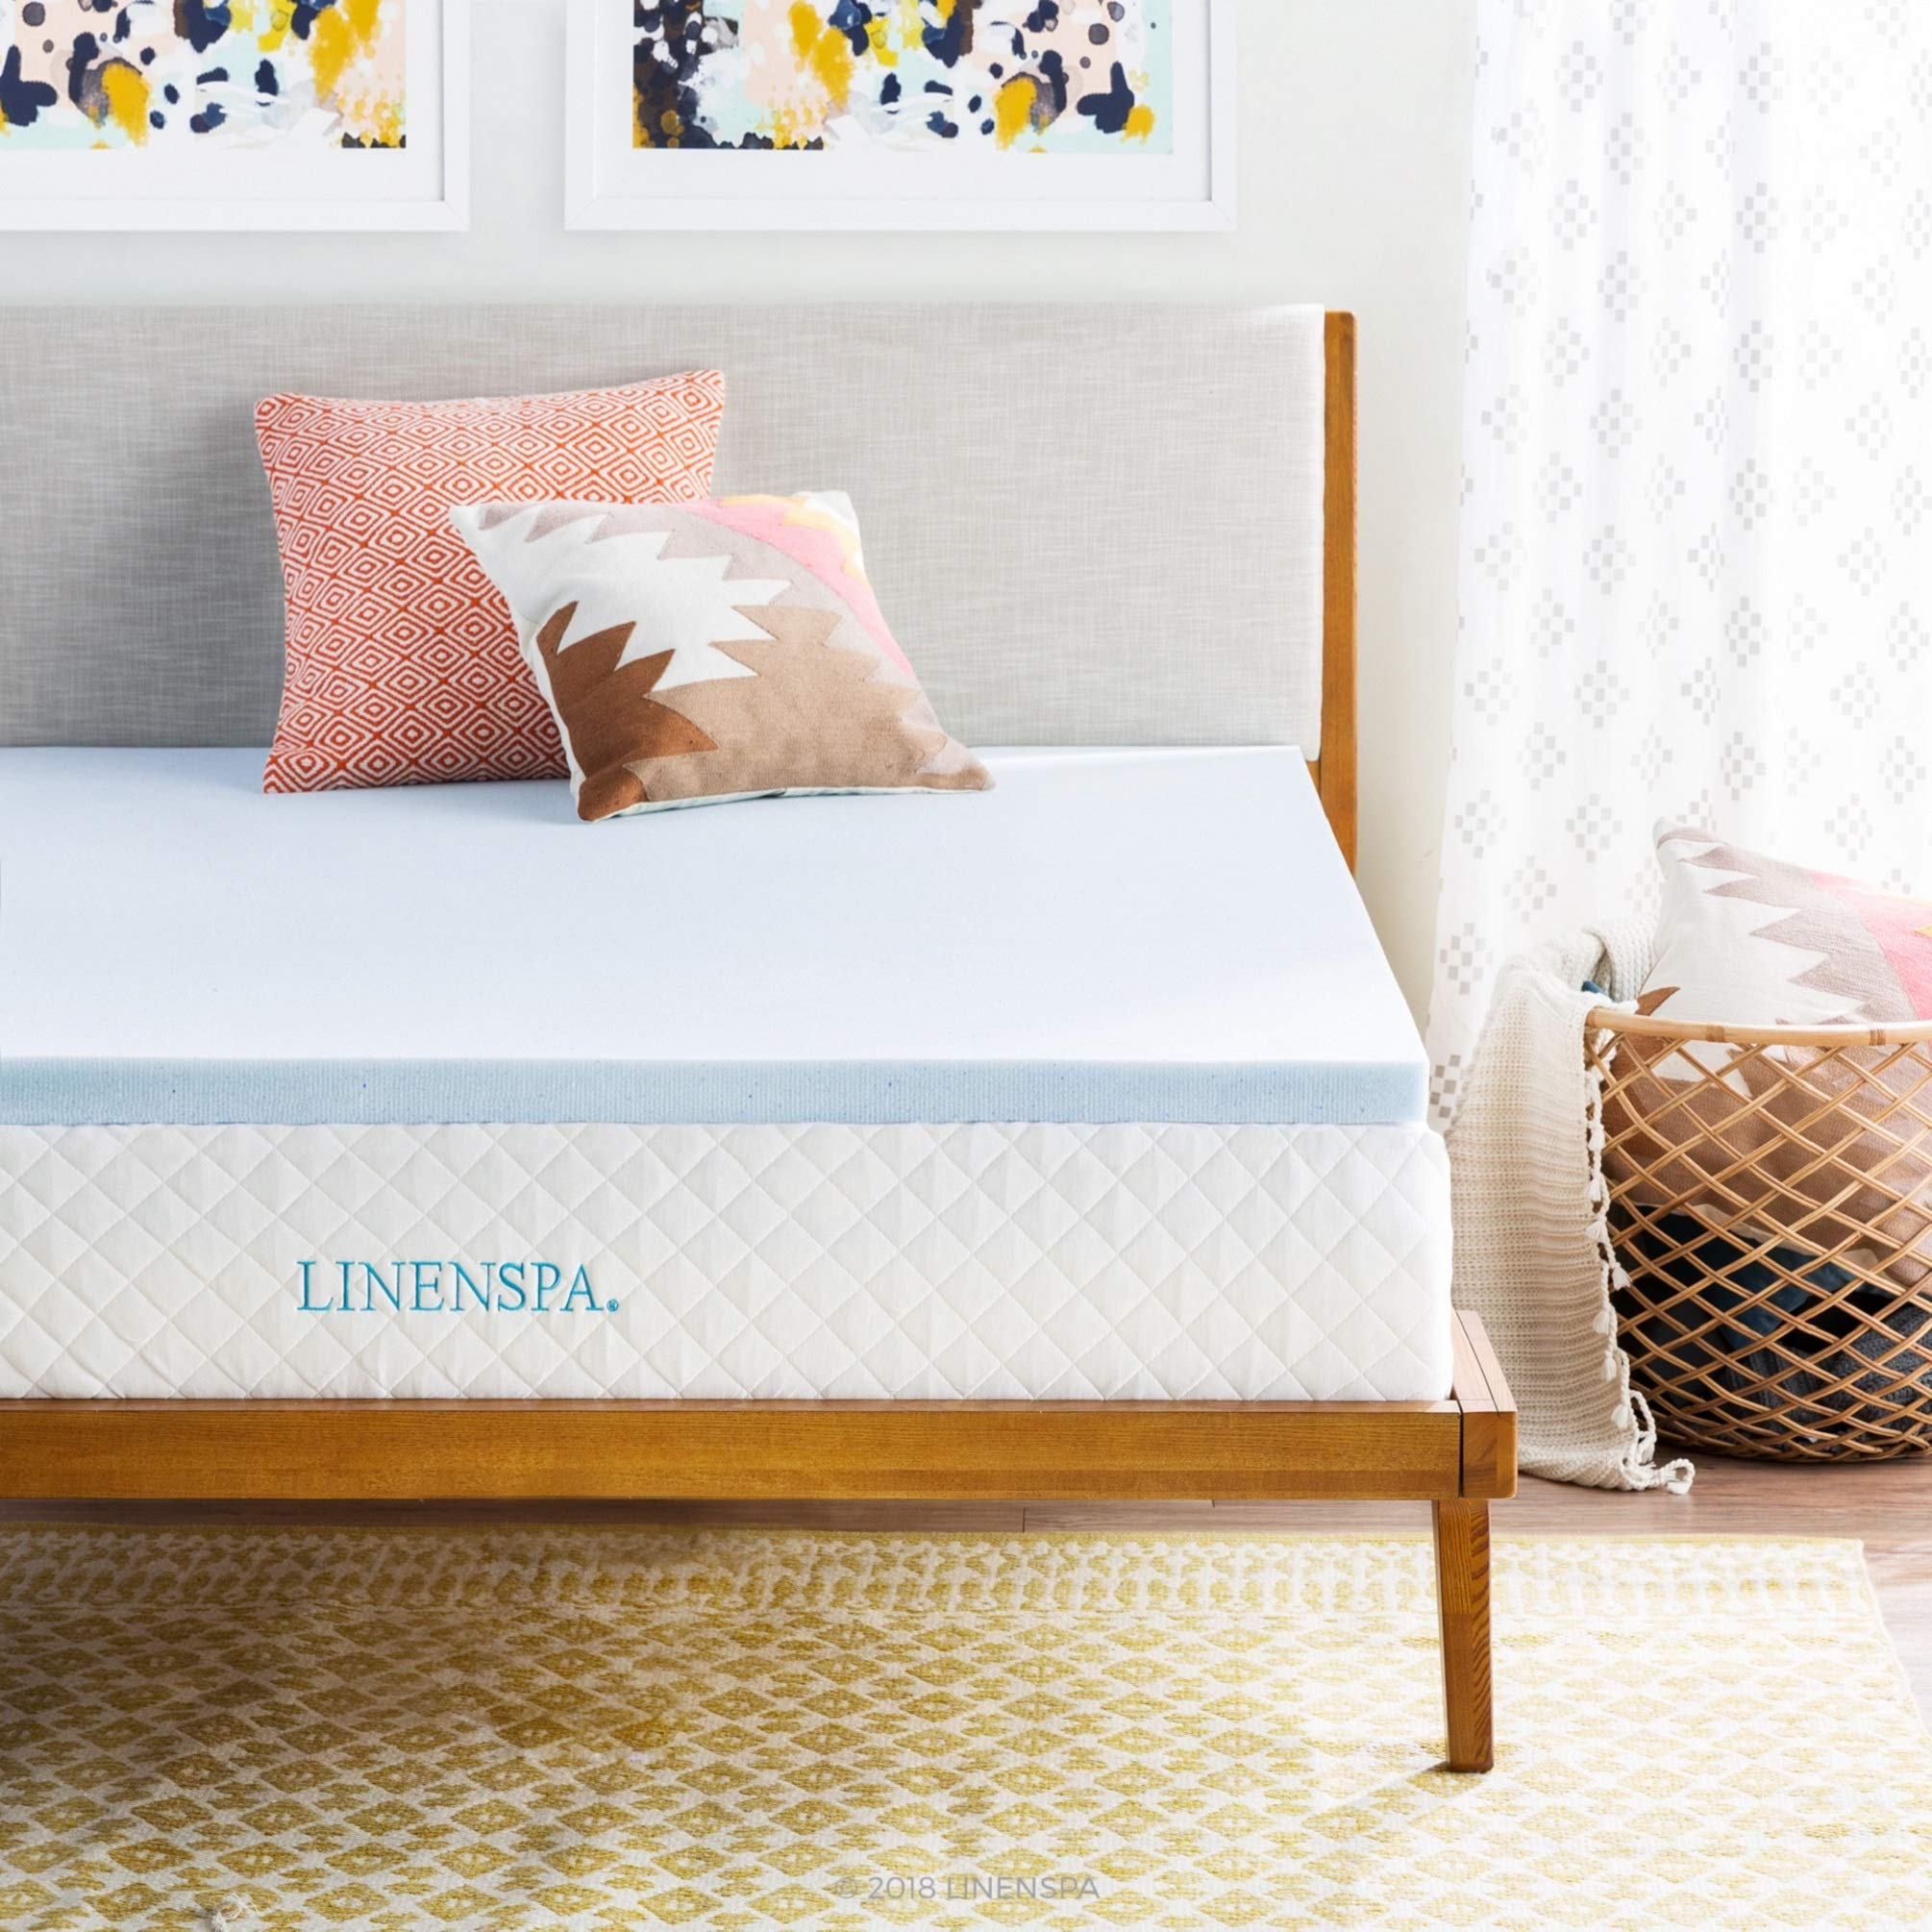 10 Toppers That Will Upgrade Your Mattress Without Buying A New One